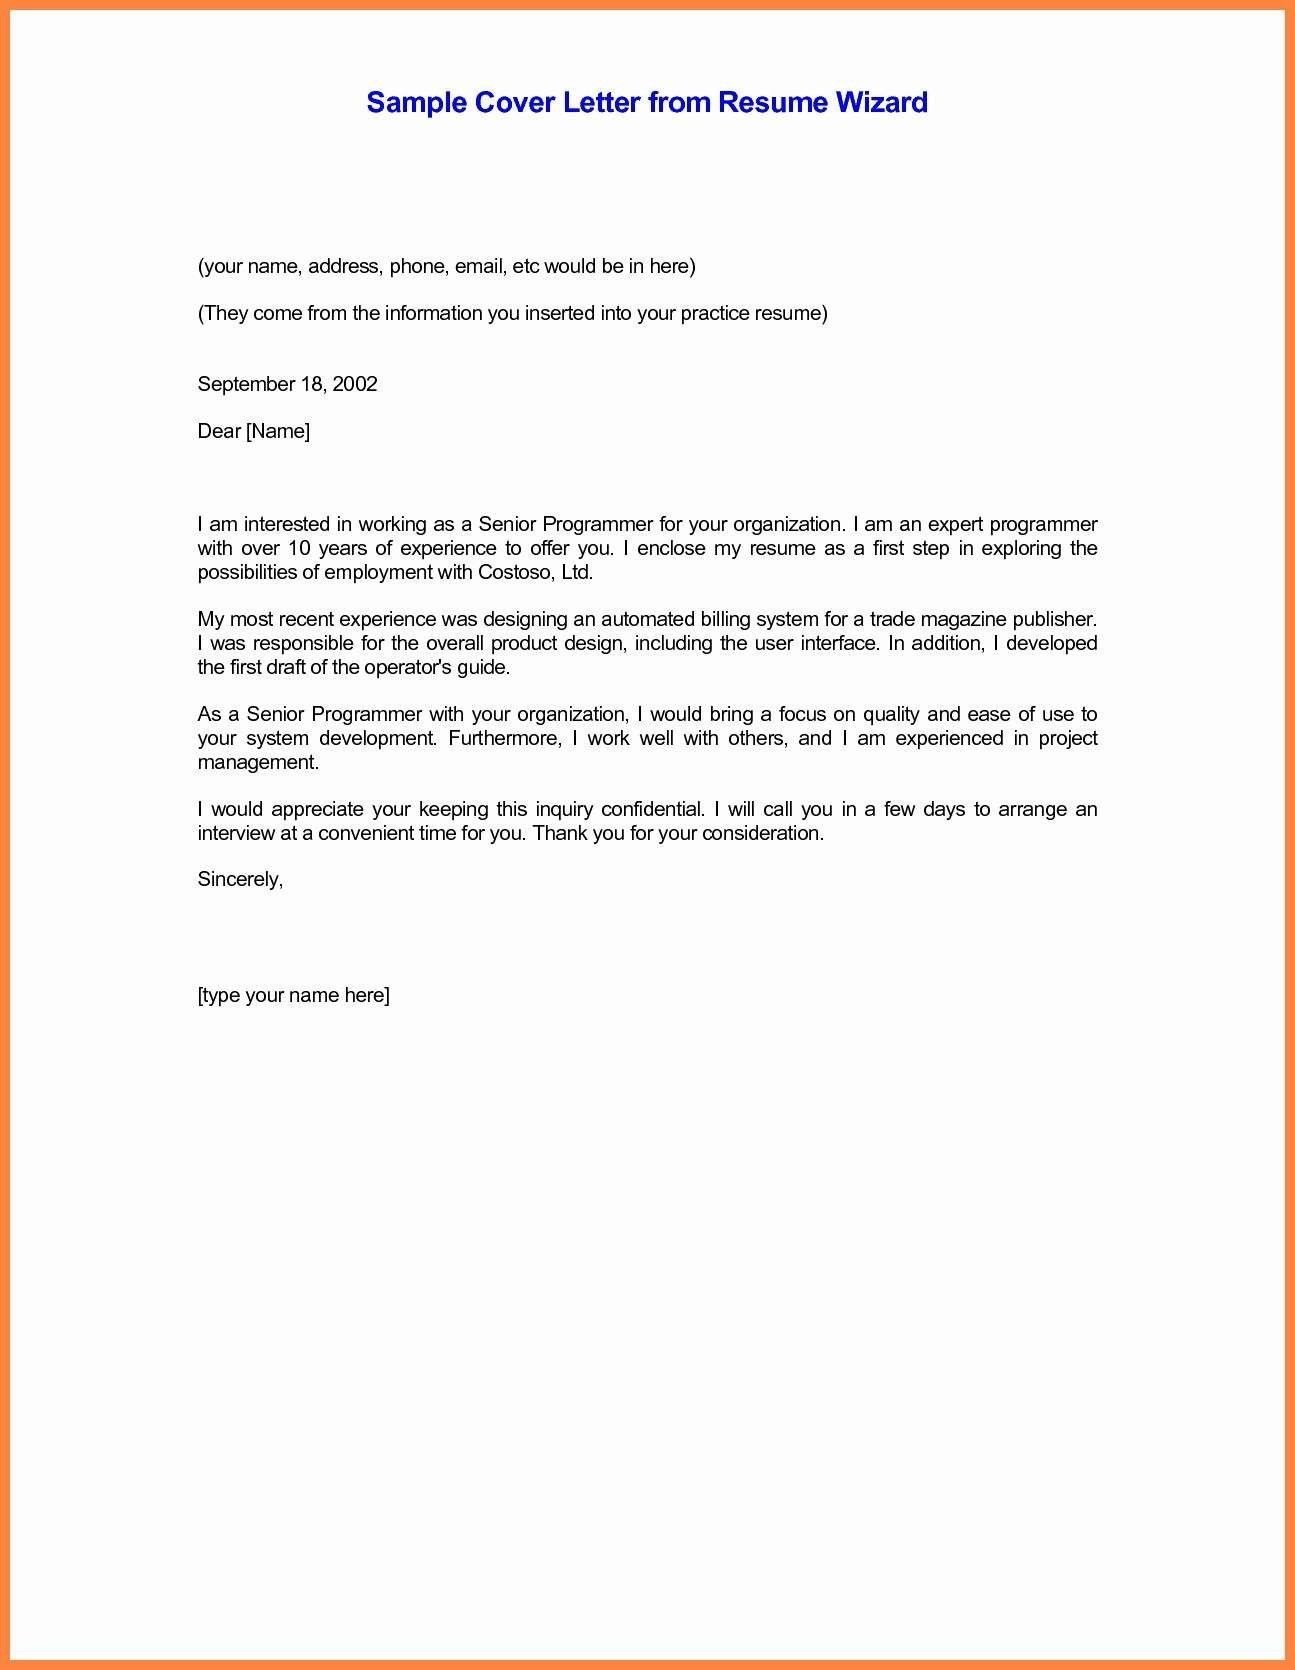 25 Customer Service Cover Letter Samples Security Letters Best What Is A Resume For Job Unique